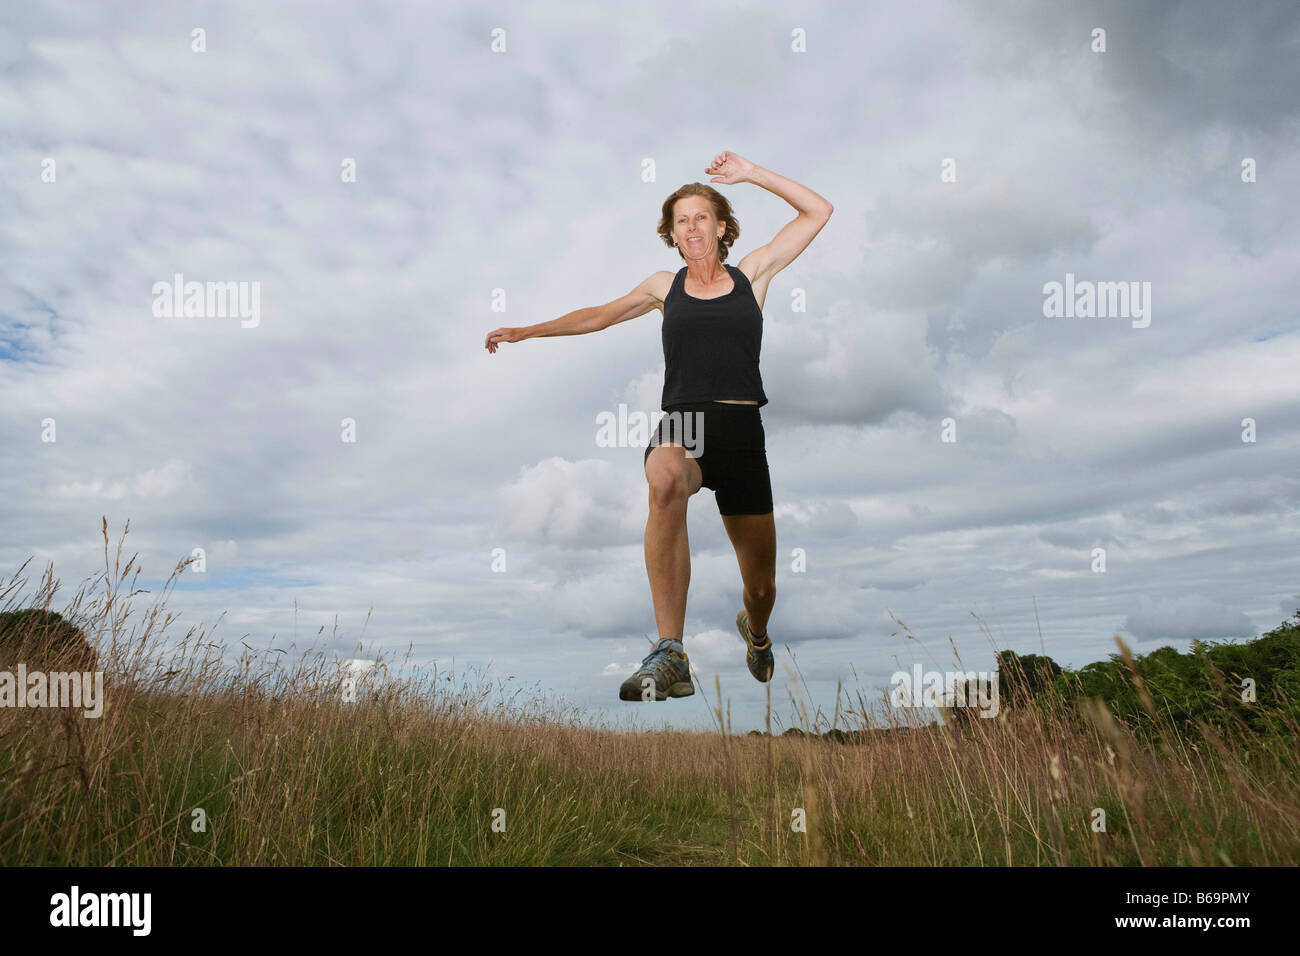 Woman running on dirt track - Stock Image